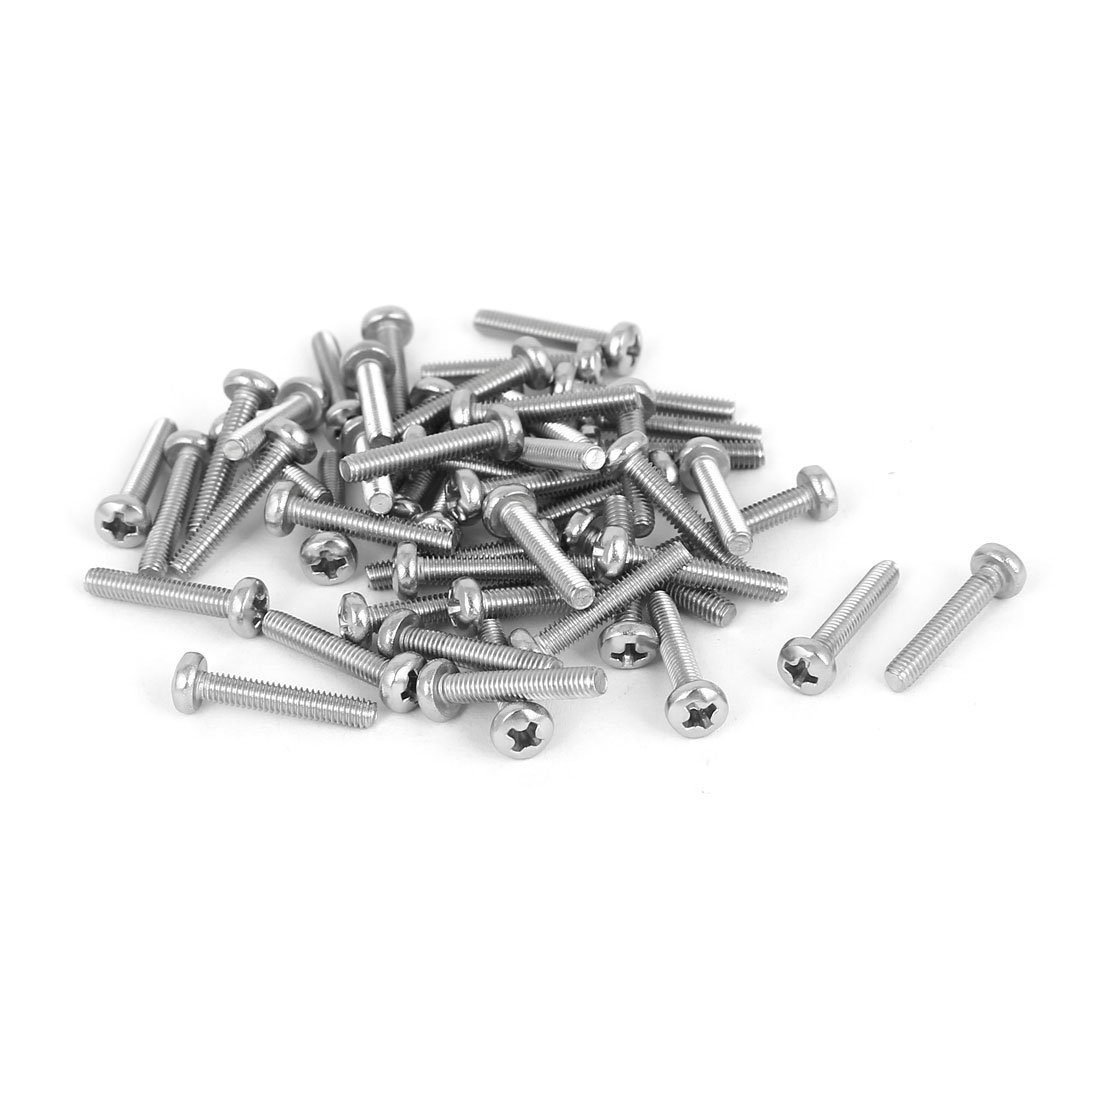 50 Pcs M2.5x14mm 316 Stainless Steel Phillips Pan Head Machine Screws Fasteners